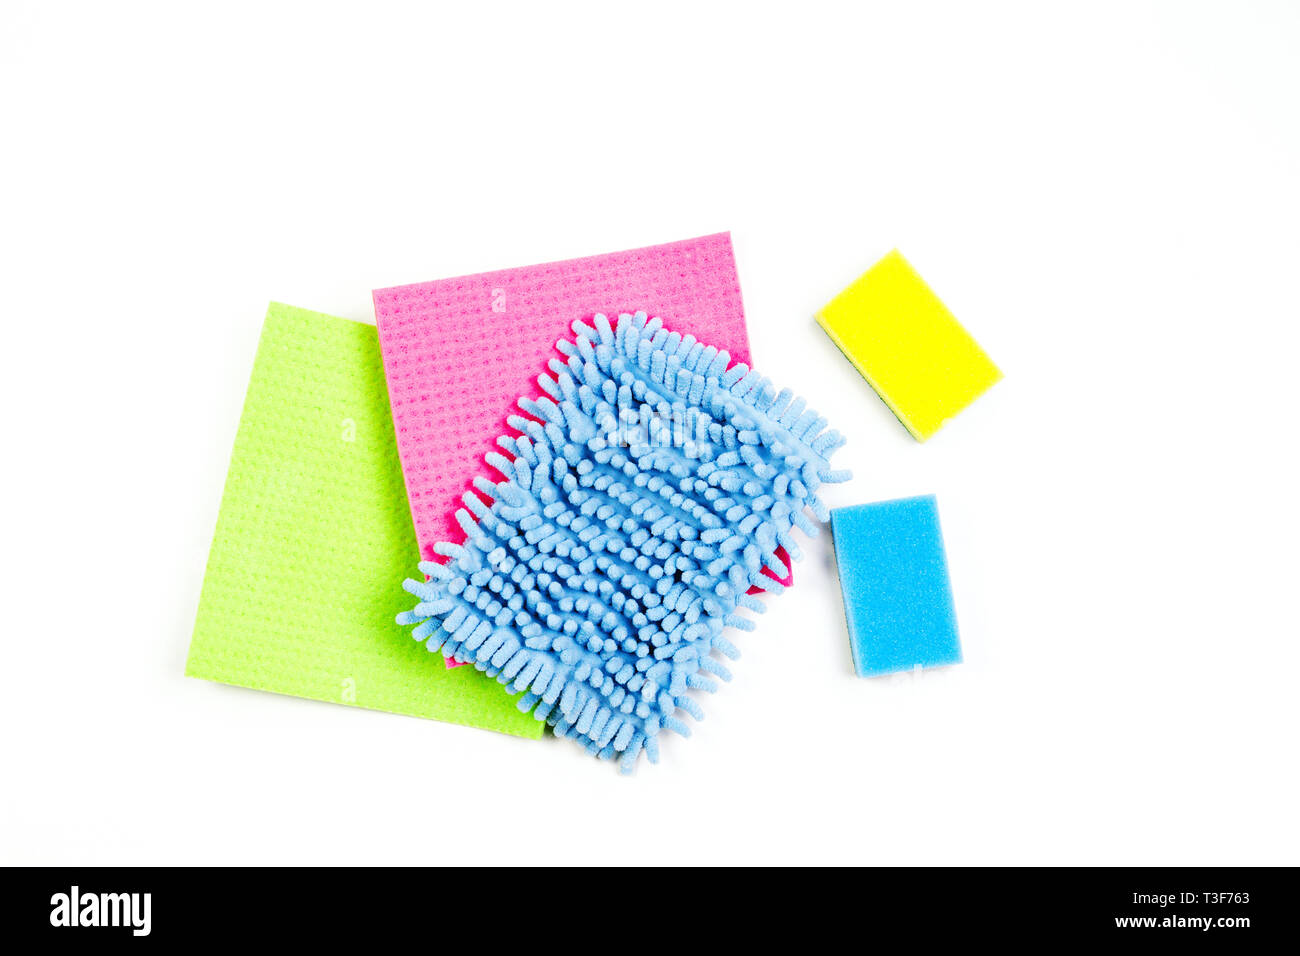 Housework, housekeeping, household, cleaning service concept. Multicolored rags and sponges on white background - Stock Image